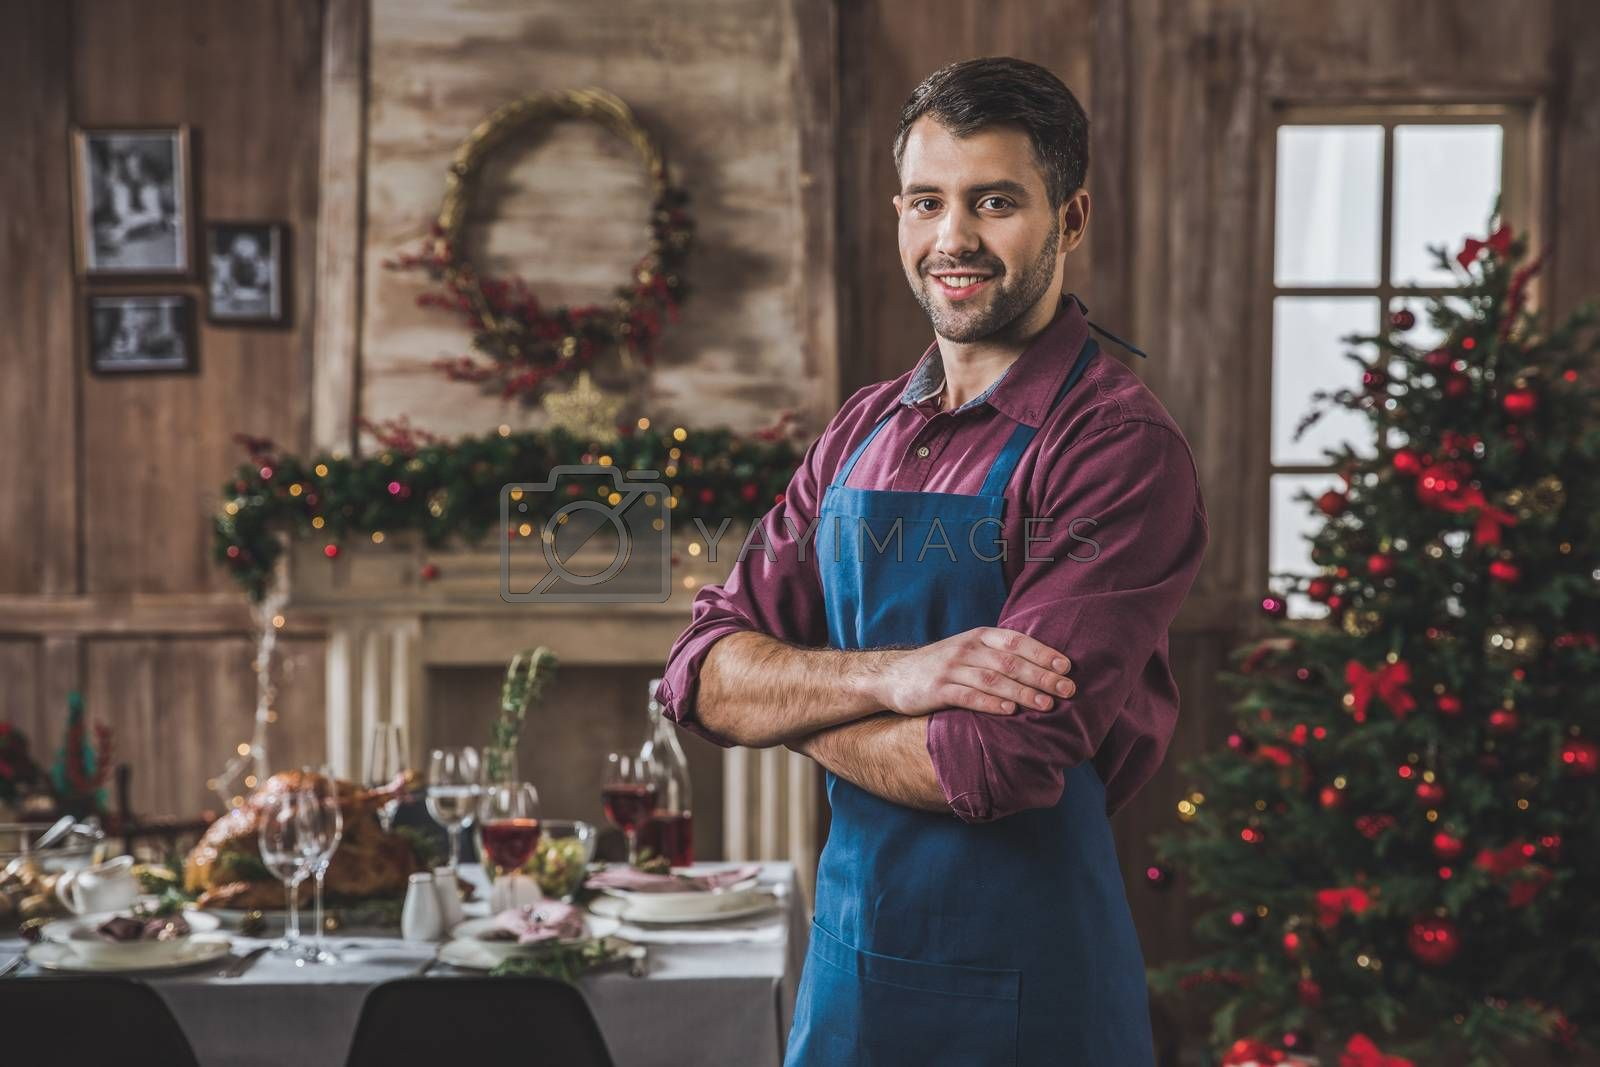 Smiling man in blue apron standing near Christmas table and looking at camera